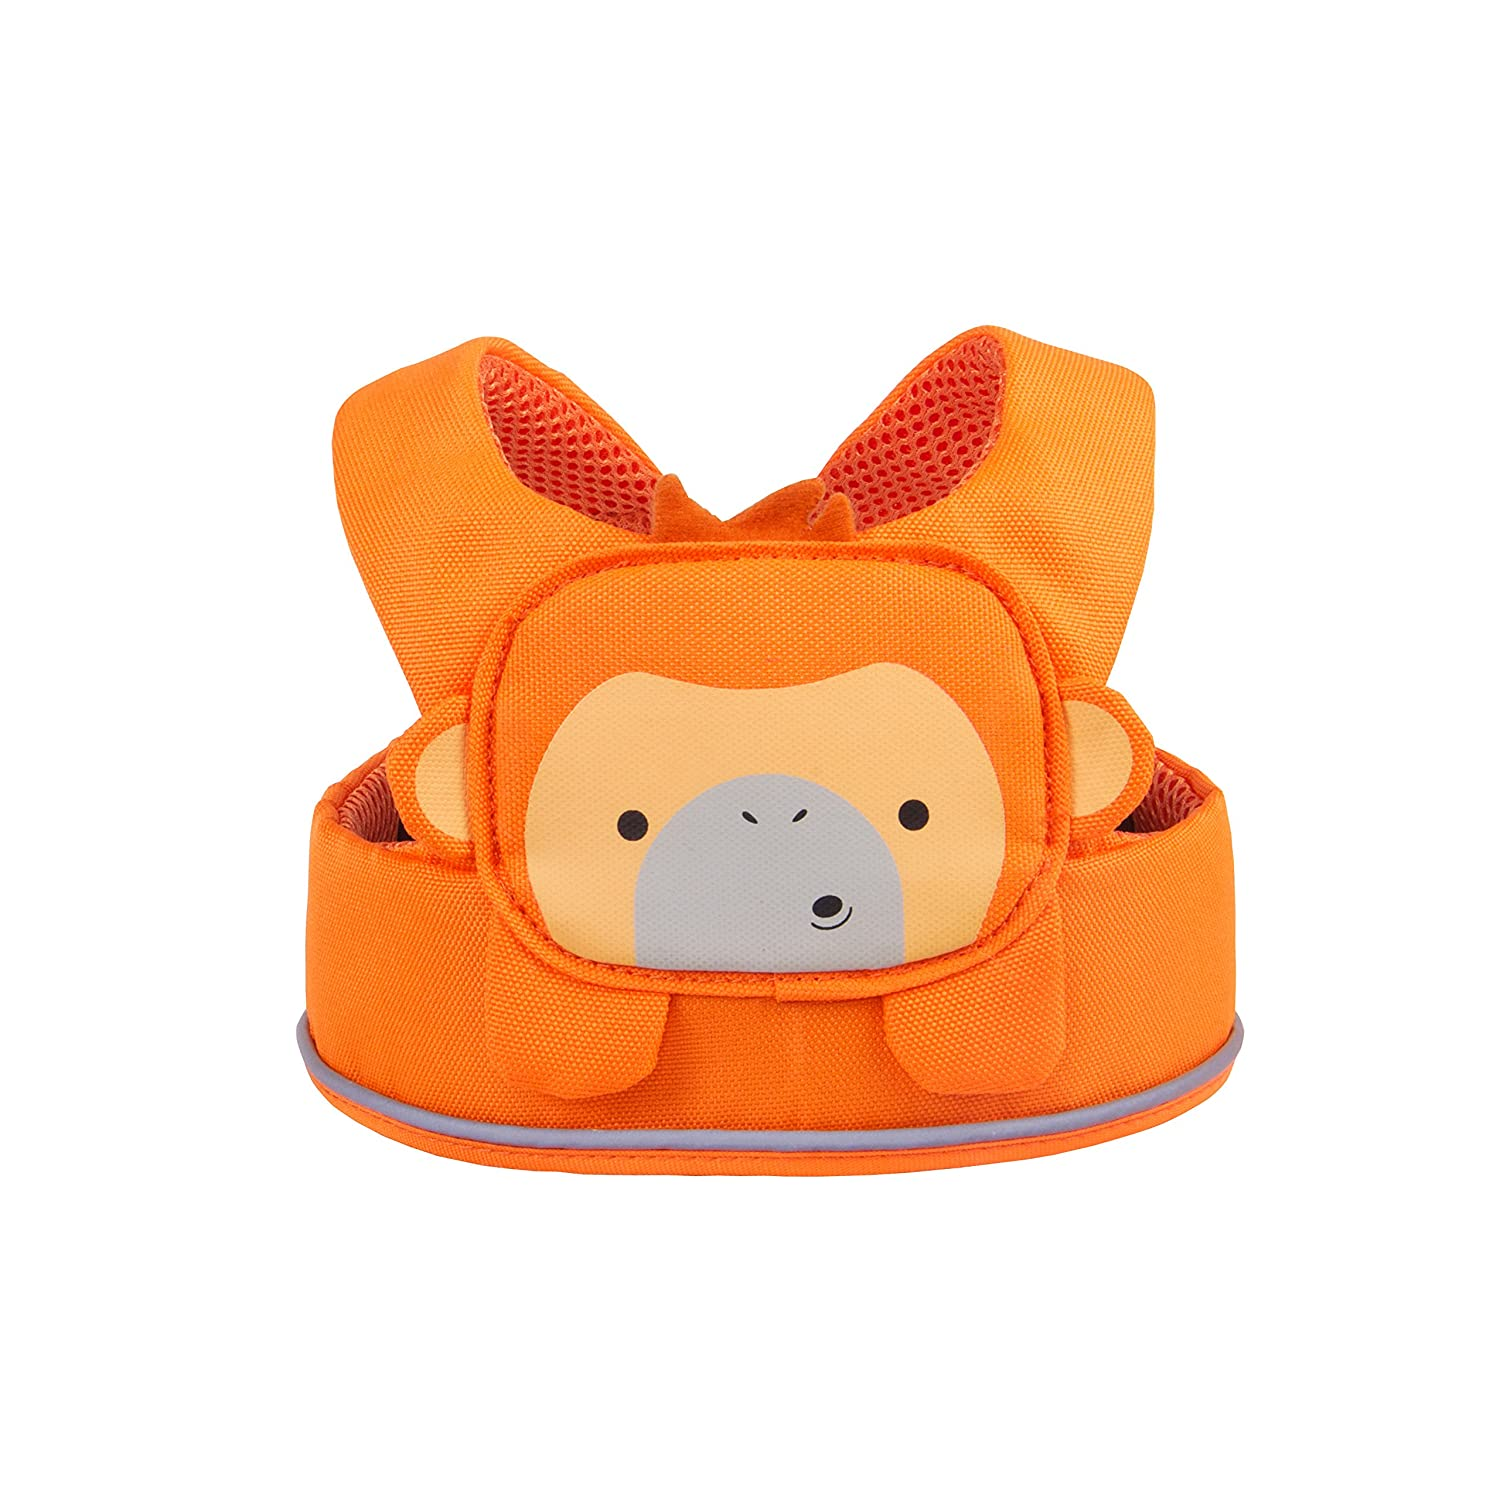 Trunki Trunki Toddlepak Sangle, 35 cm, Orange 0155-GB01